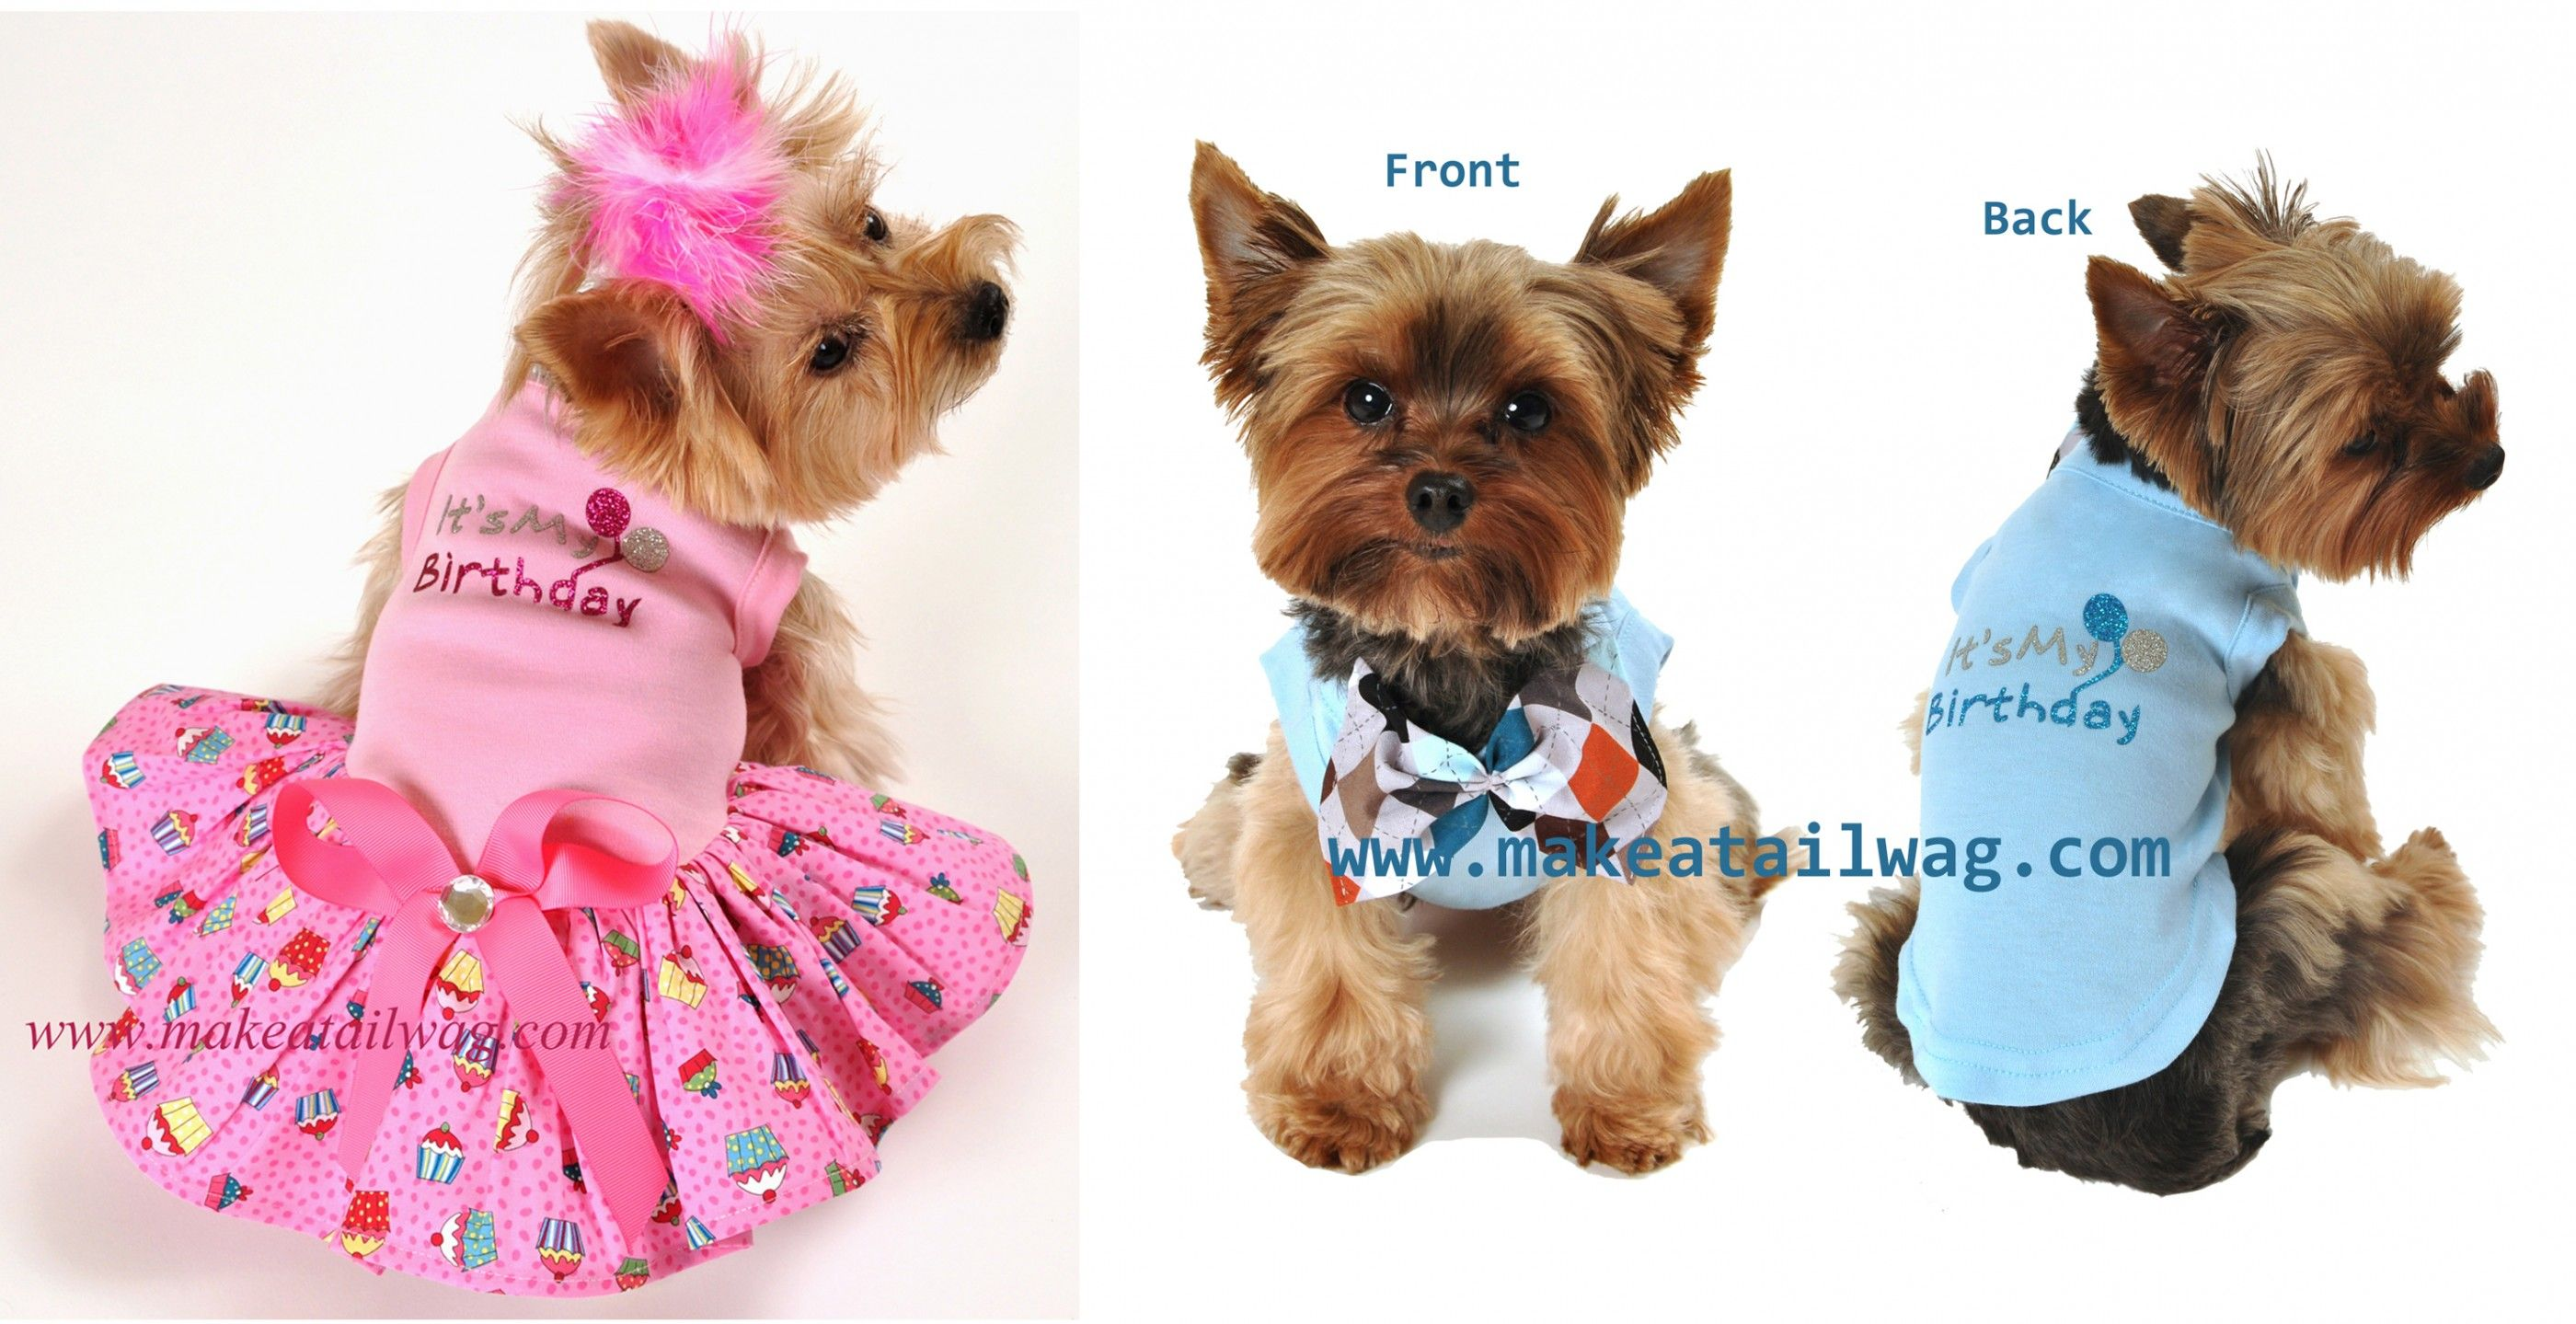 Birthday Outfits For Dogs Photo 1 Dress The Dog